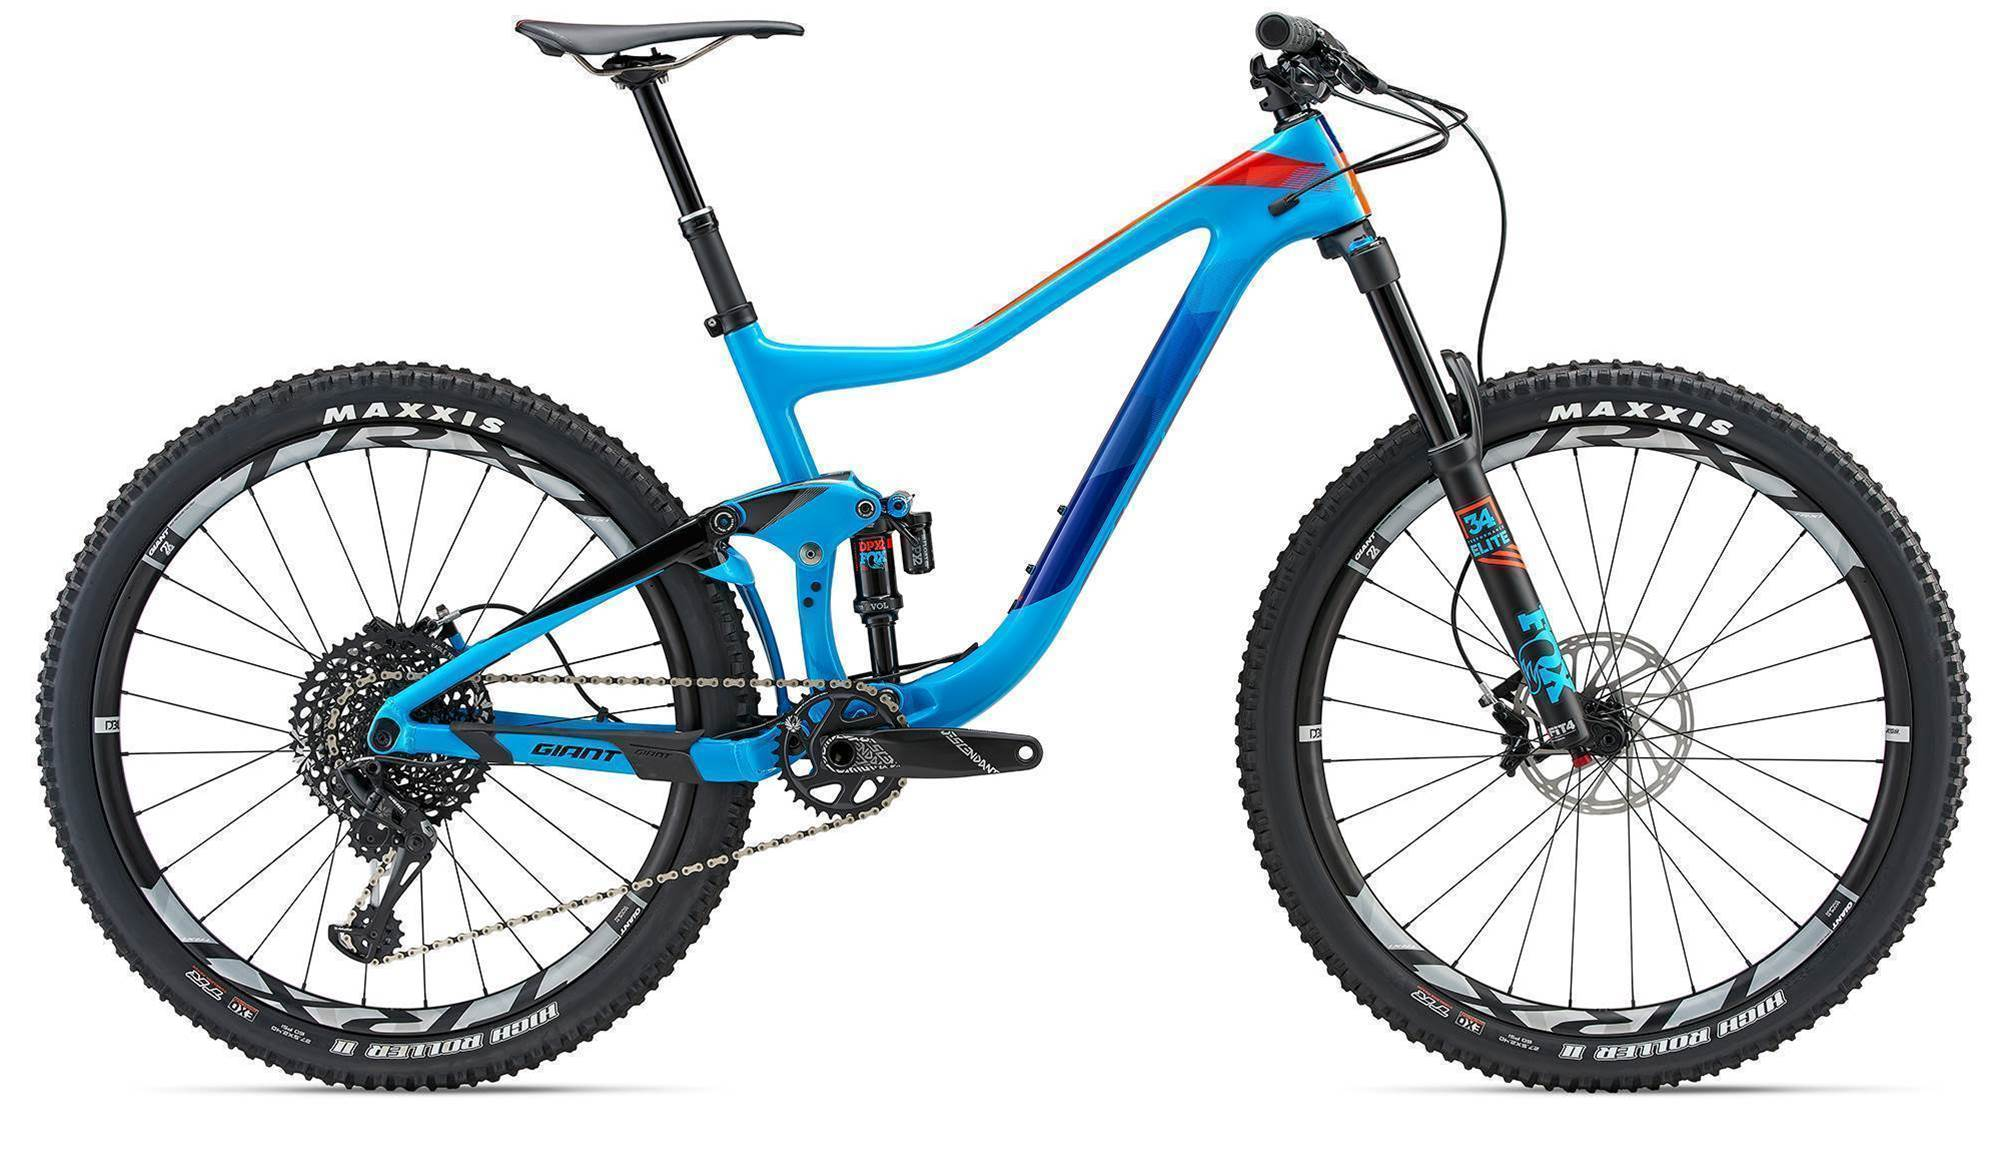 Giant's 2018 MTB range is the best yet